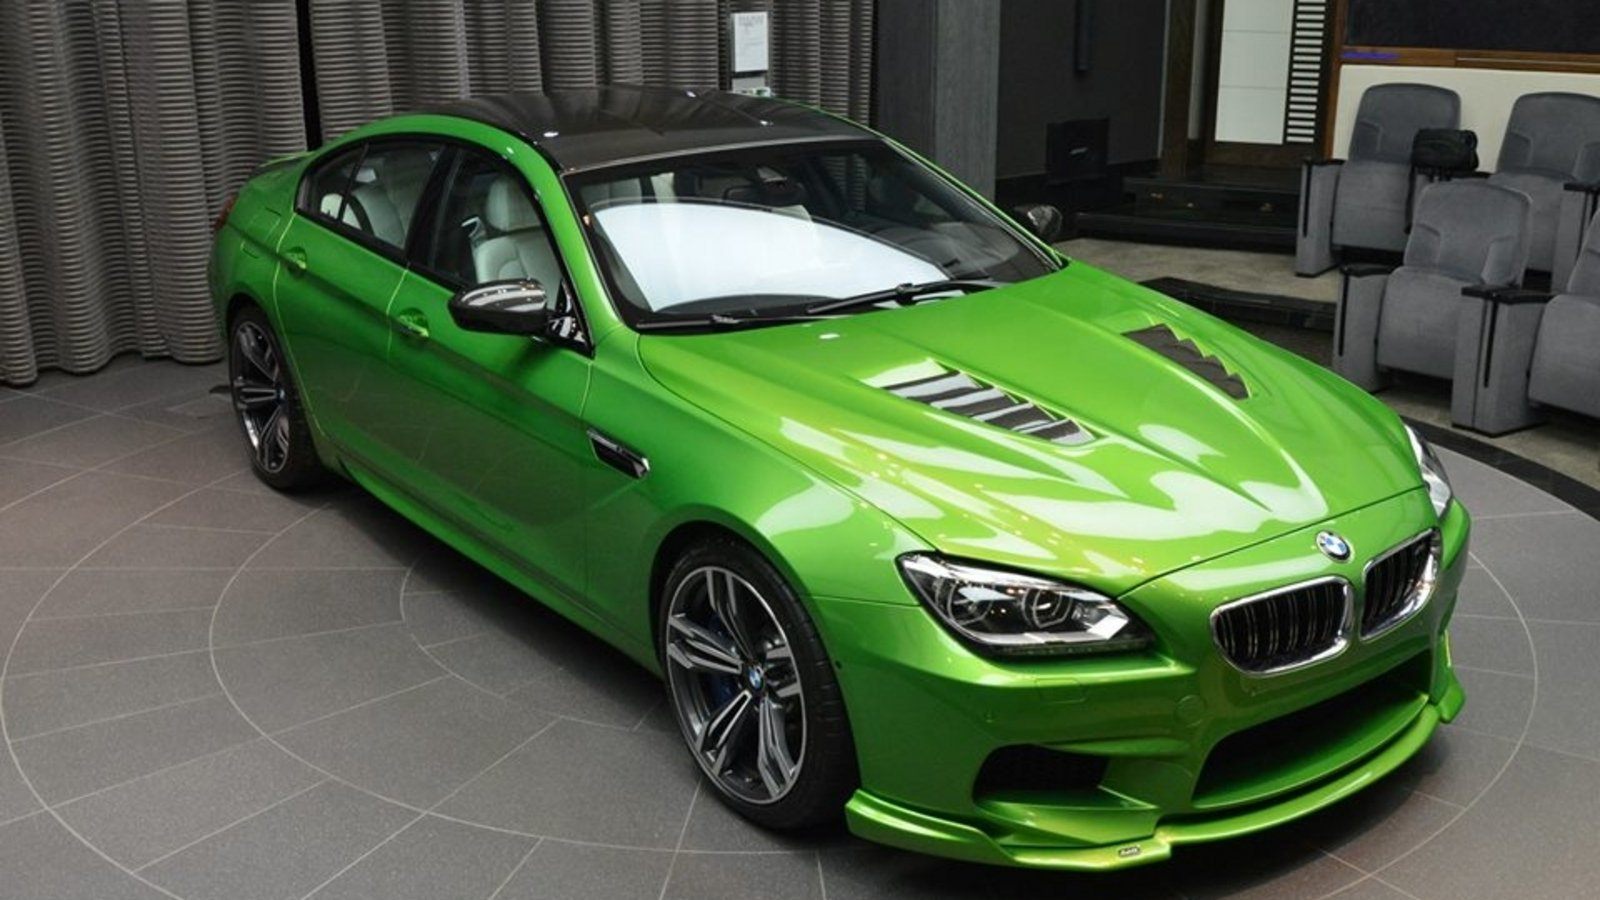 BMW M6 Gran Coupe >> 2014 BMW M6 Gran Coupe Java Green Review - Top Speed